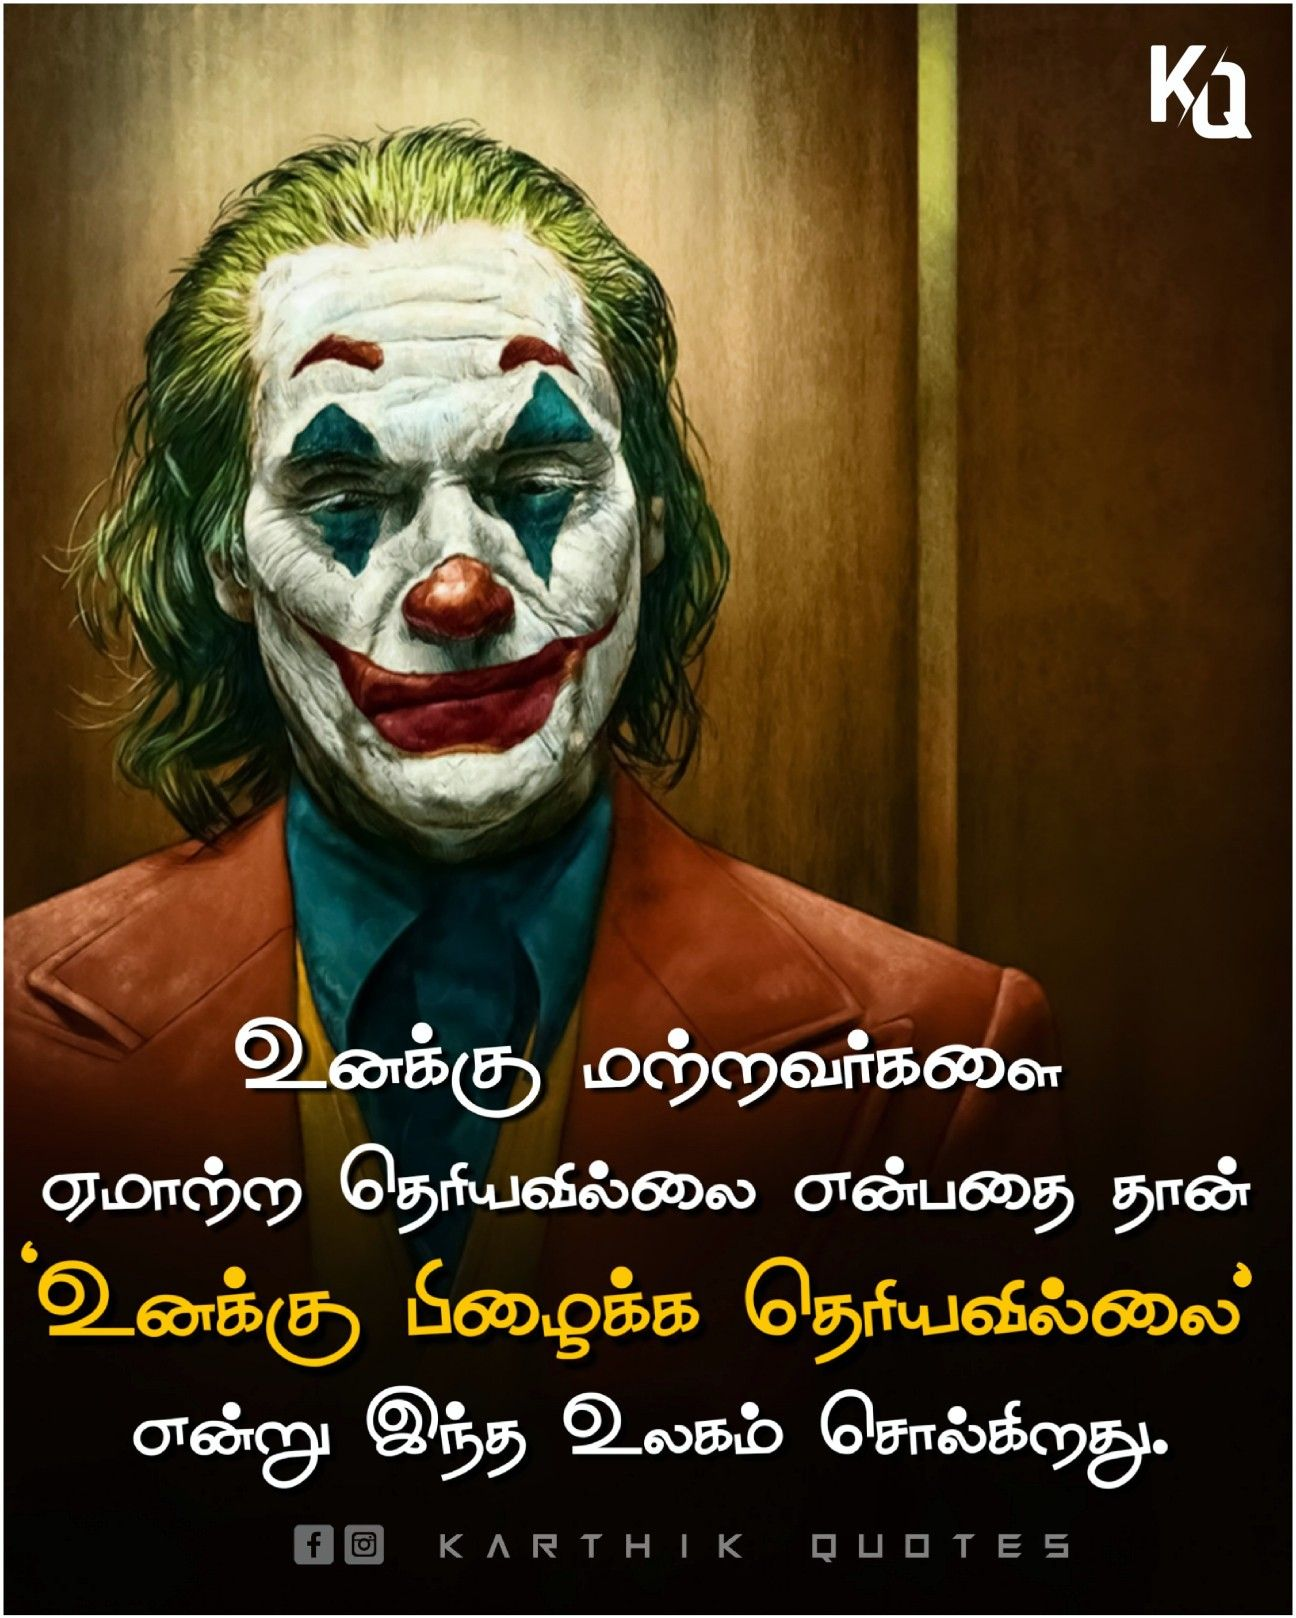 Pin By Sulaiman Sulthan On Philosophy Joker Quotes Failure Quotes Tamil Motivational Quotes